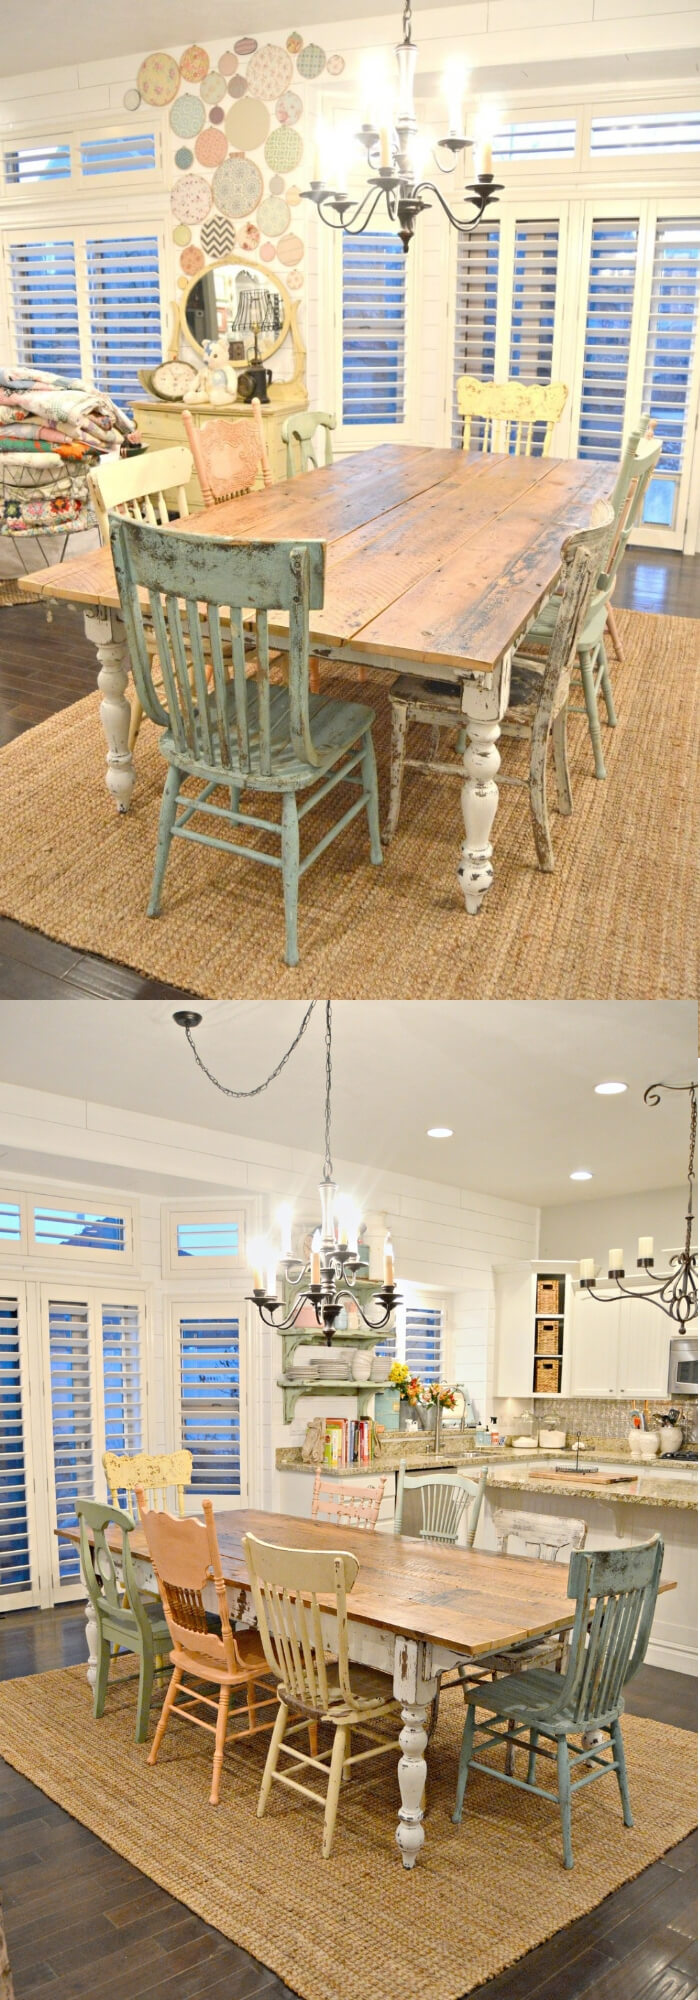 Farm style table w/mismatched chairs | Stunning Farmhouse Dining Room Design & Decor Ideas